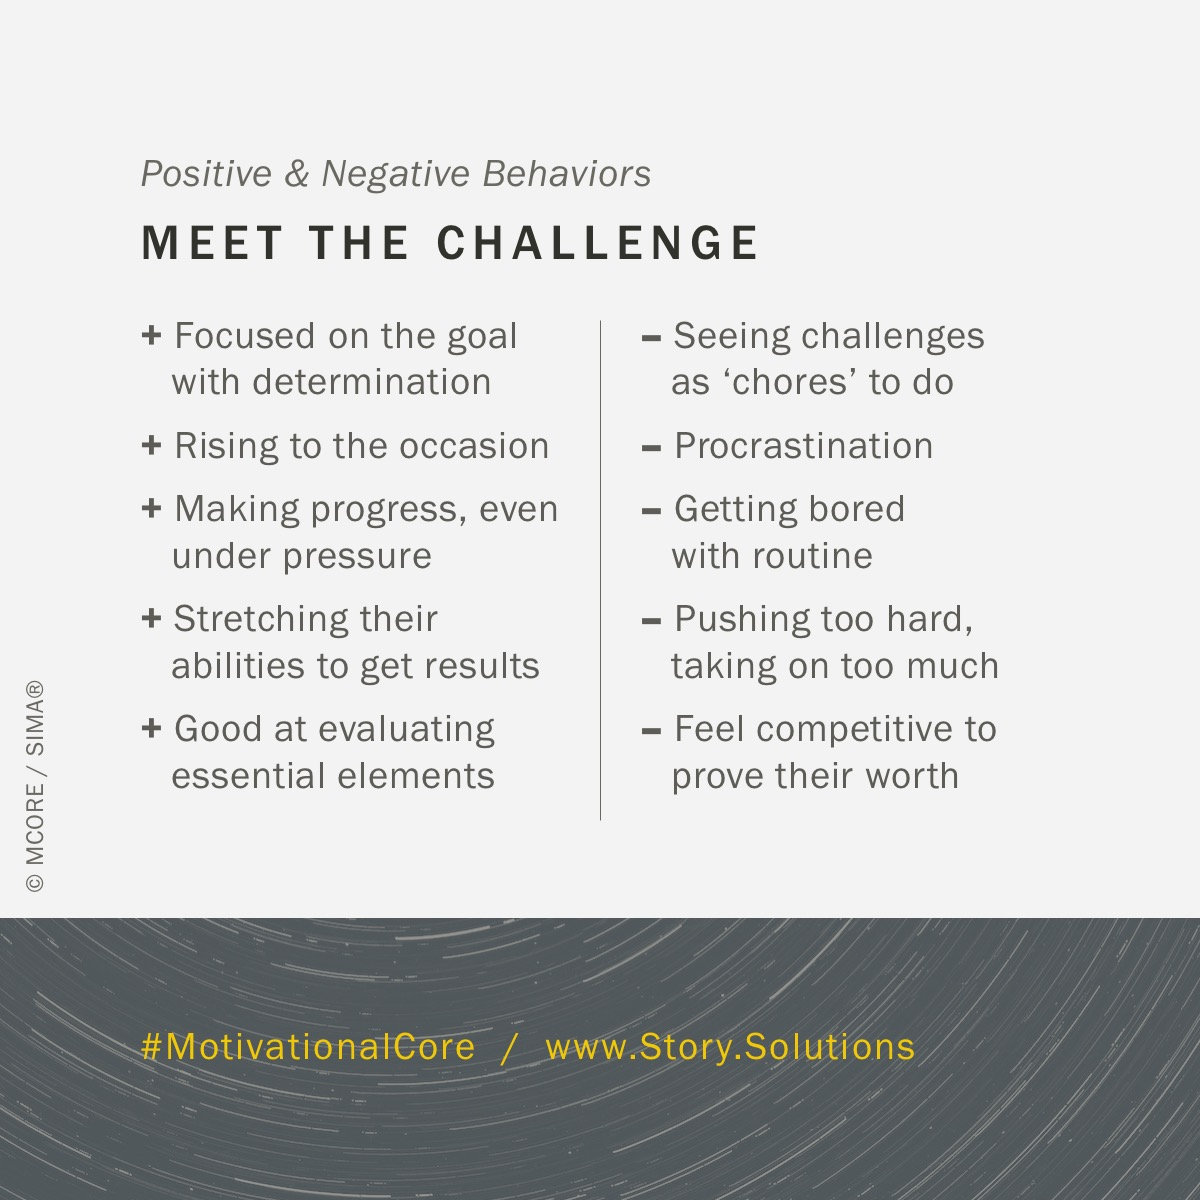 story-solutions-motivational-core-meet-the-challenge-5.jpg